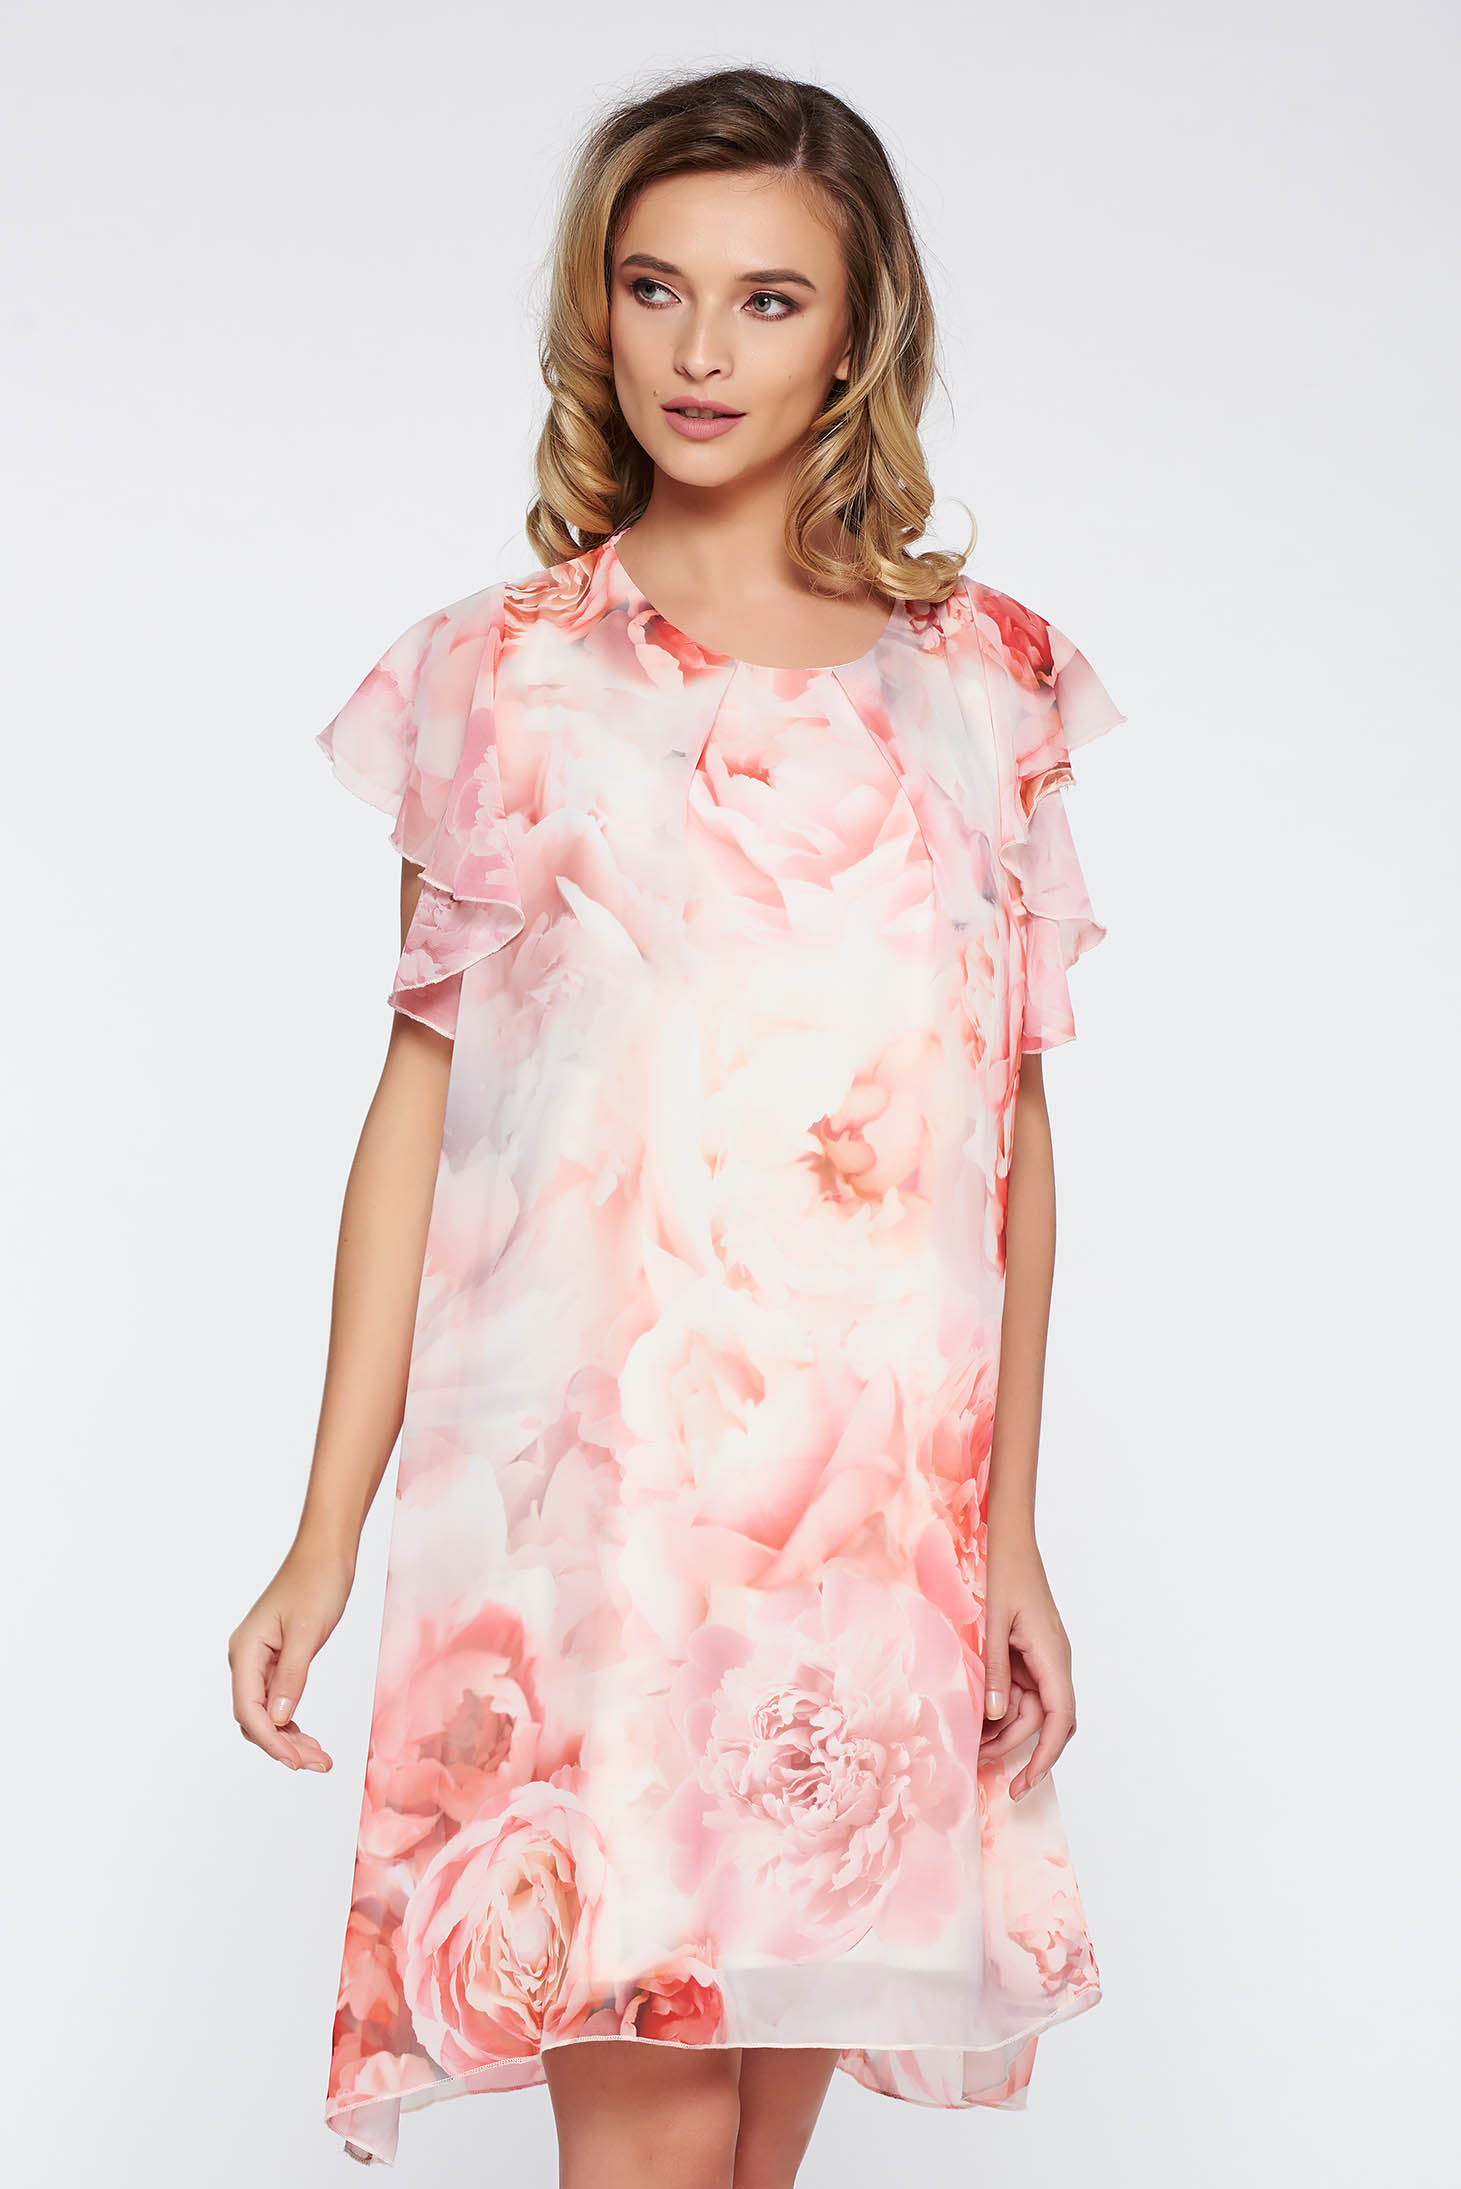 Rosa elegant flared dress transparent chiffon fabric with inside lining with floral prints